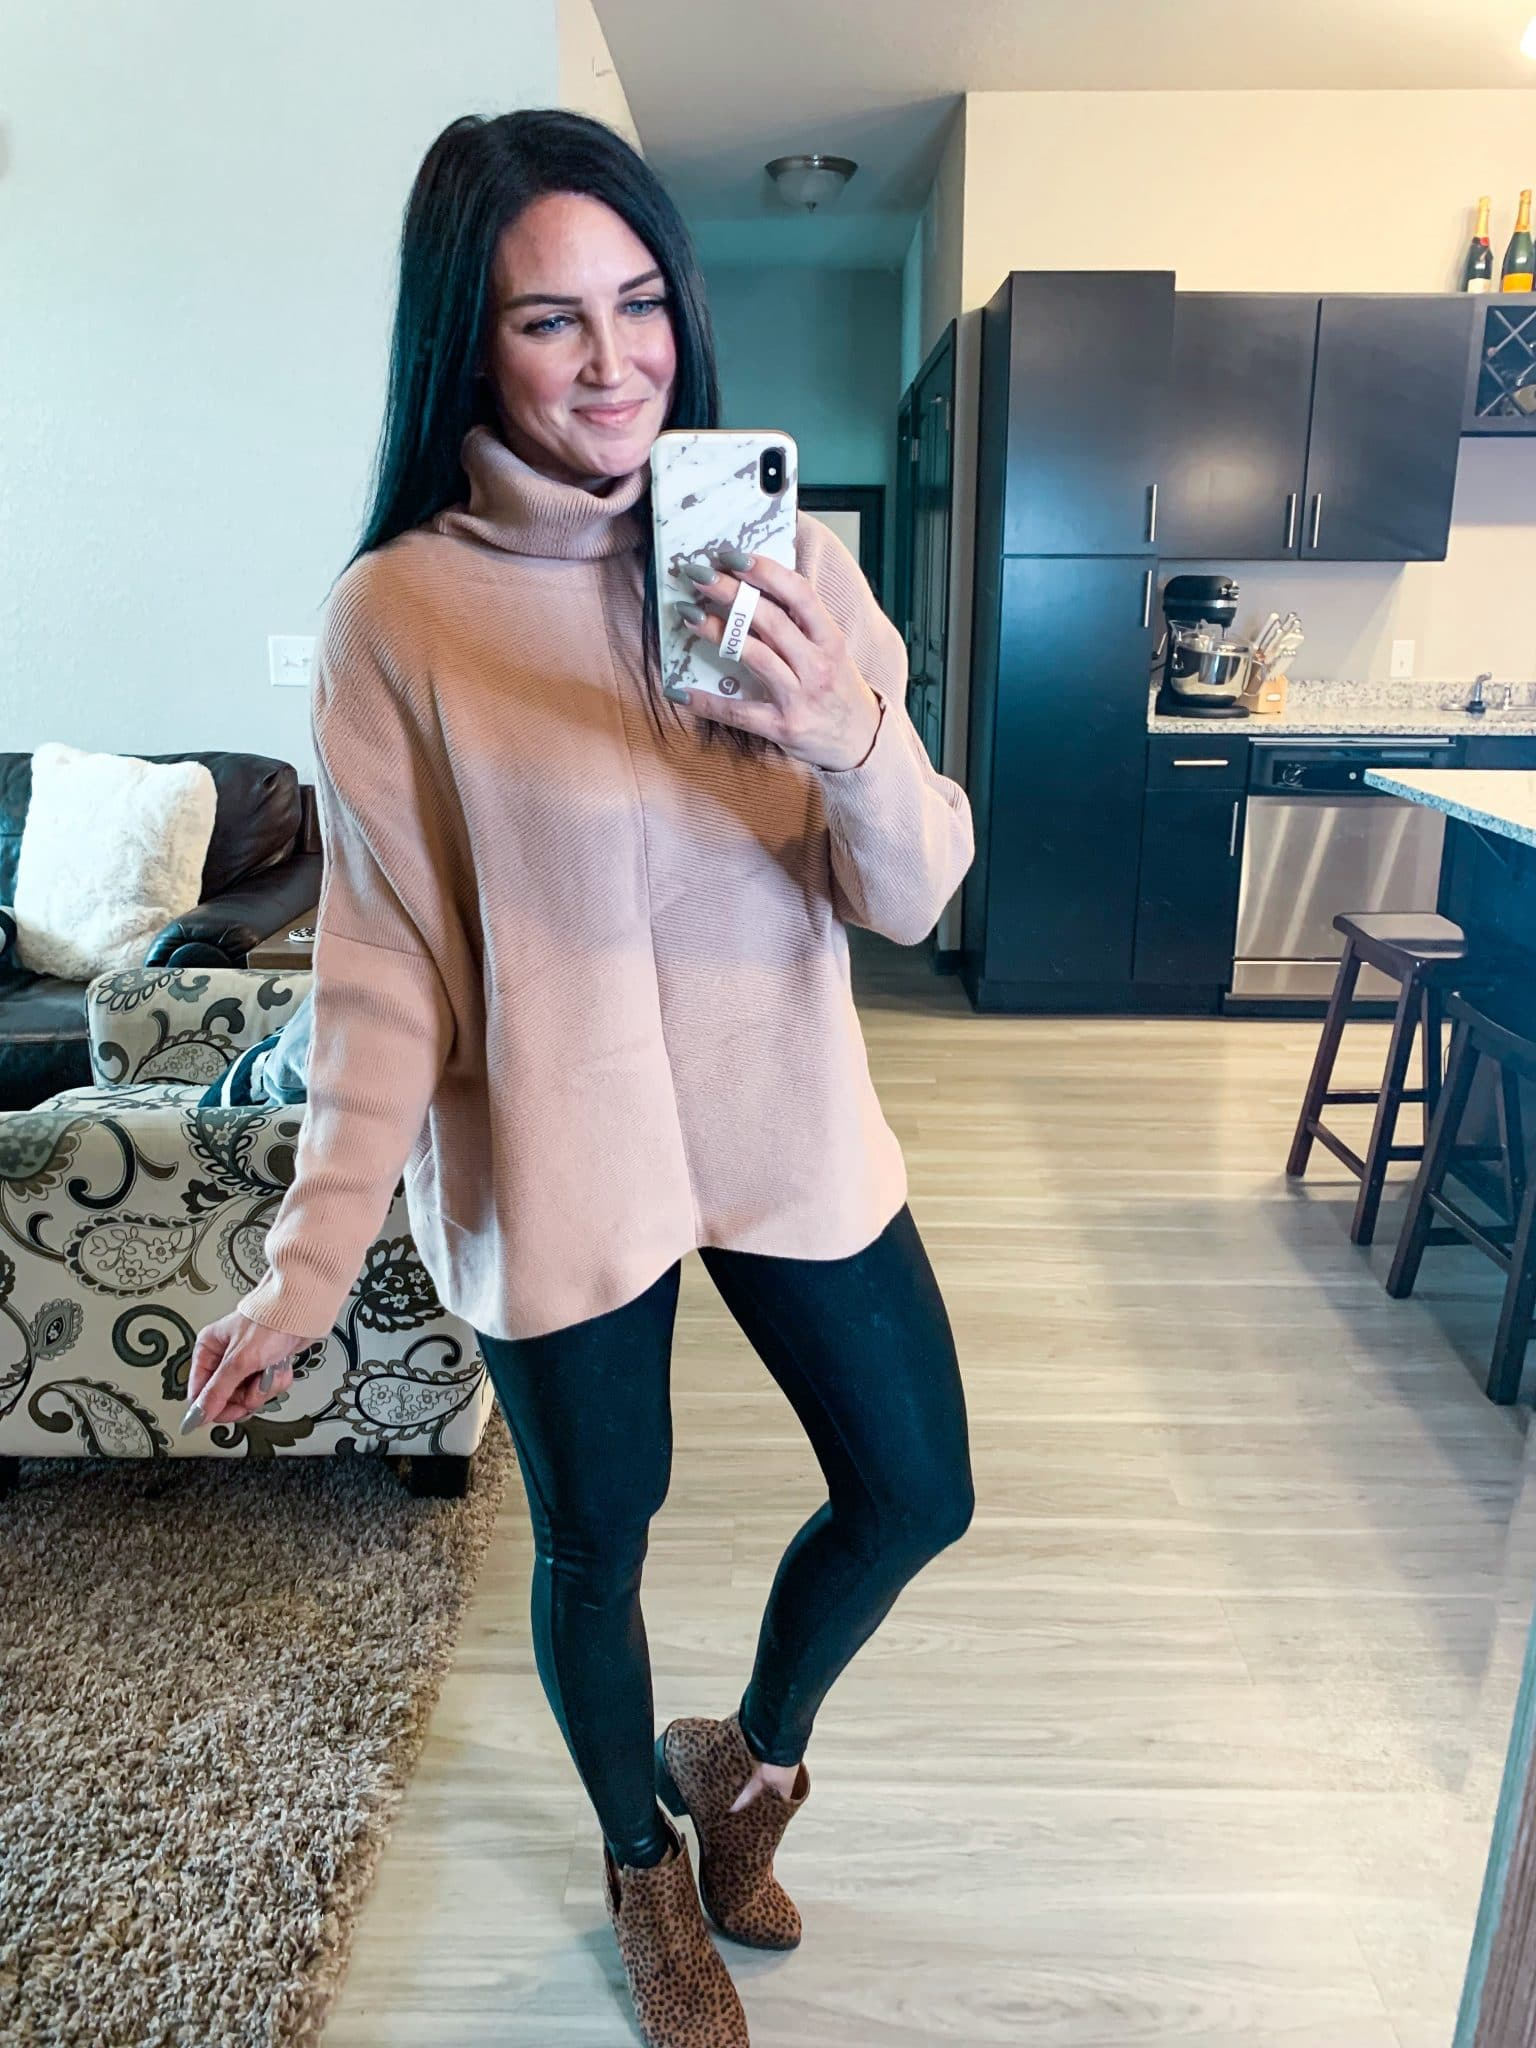 Best turtleneck sweater, Best selling Amazon sweater, Amazon Fall Finds, Fall romper, Stilettos and diapers, Molly Wey